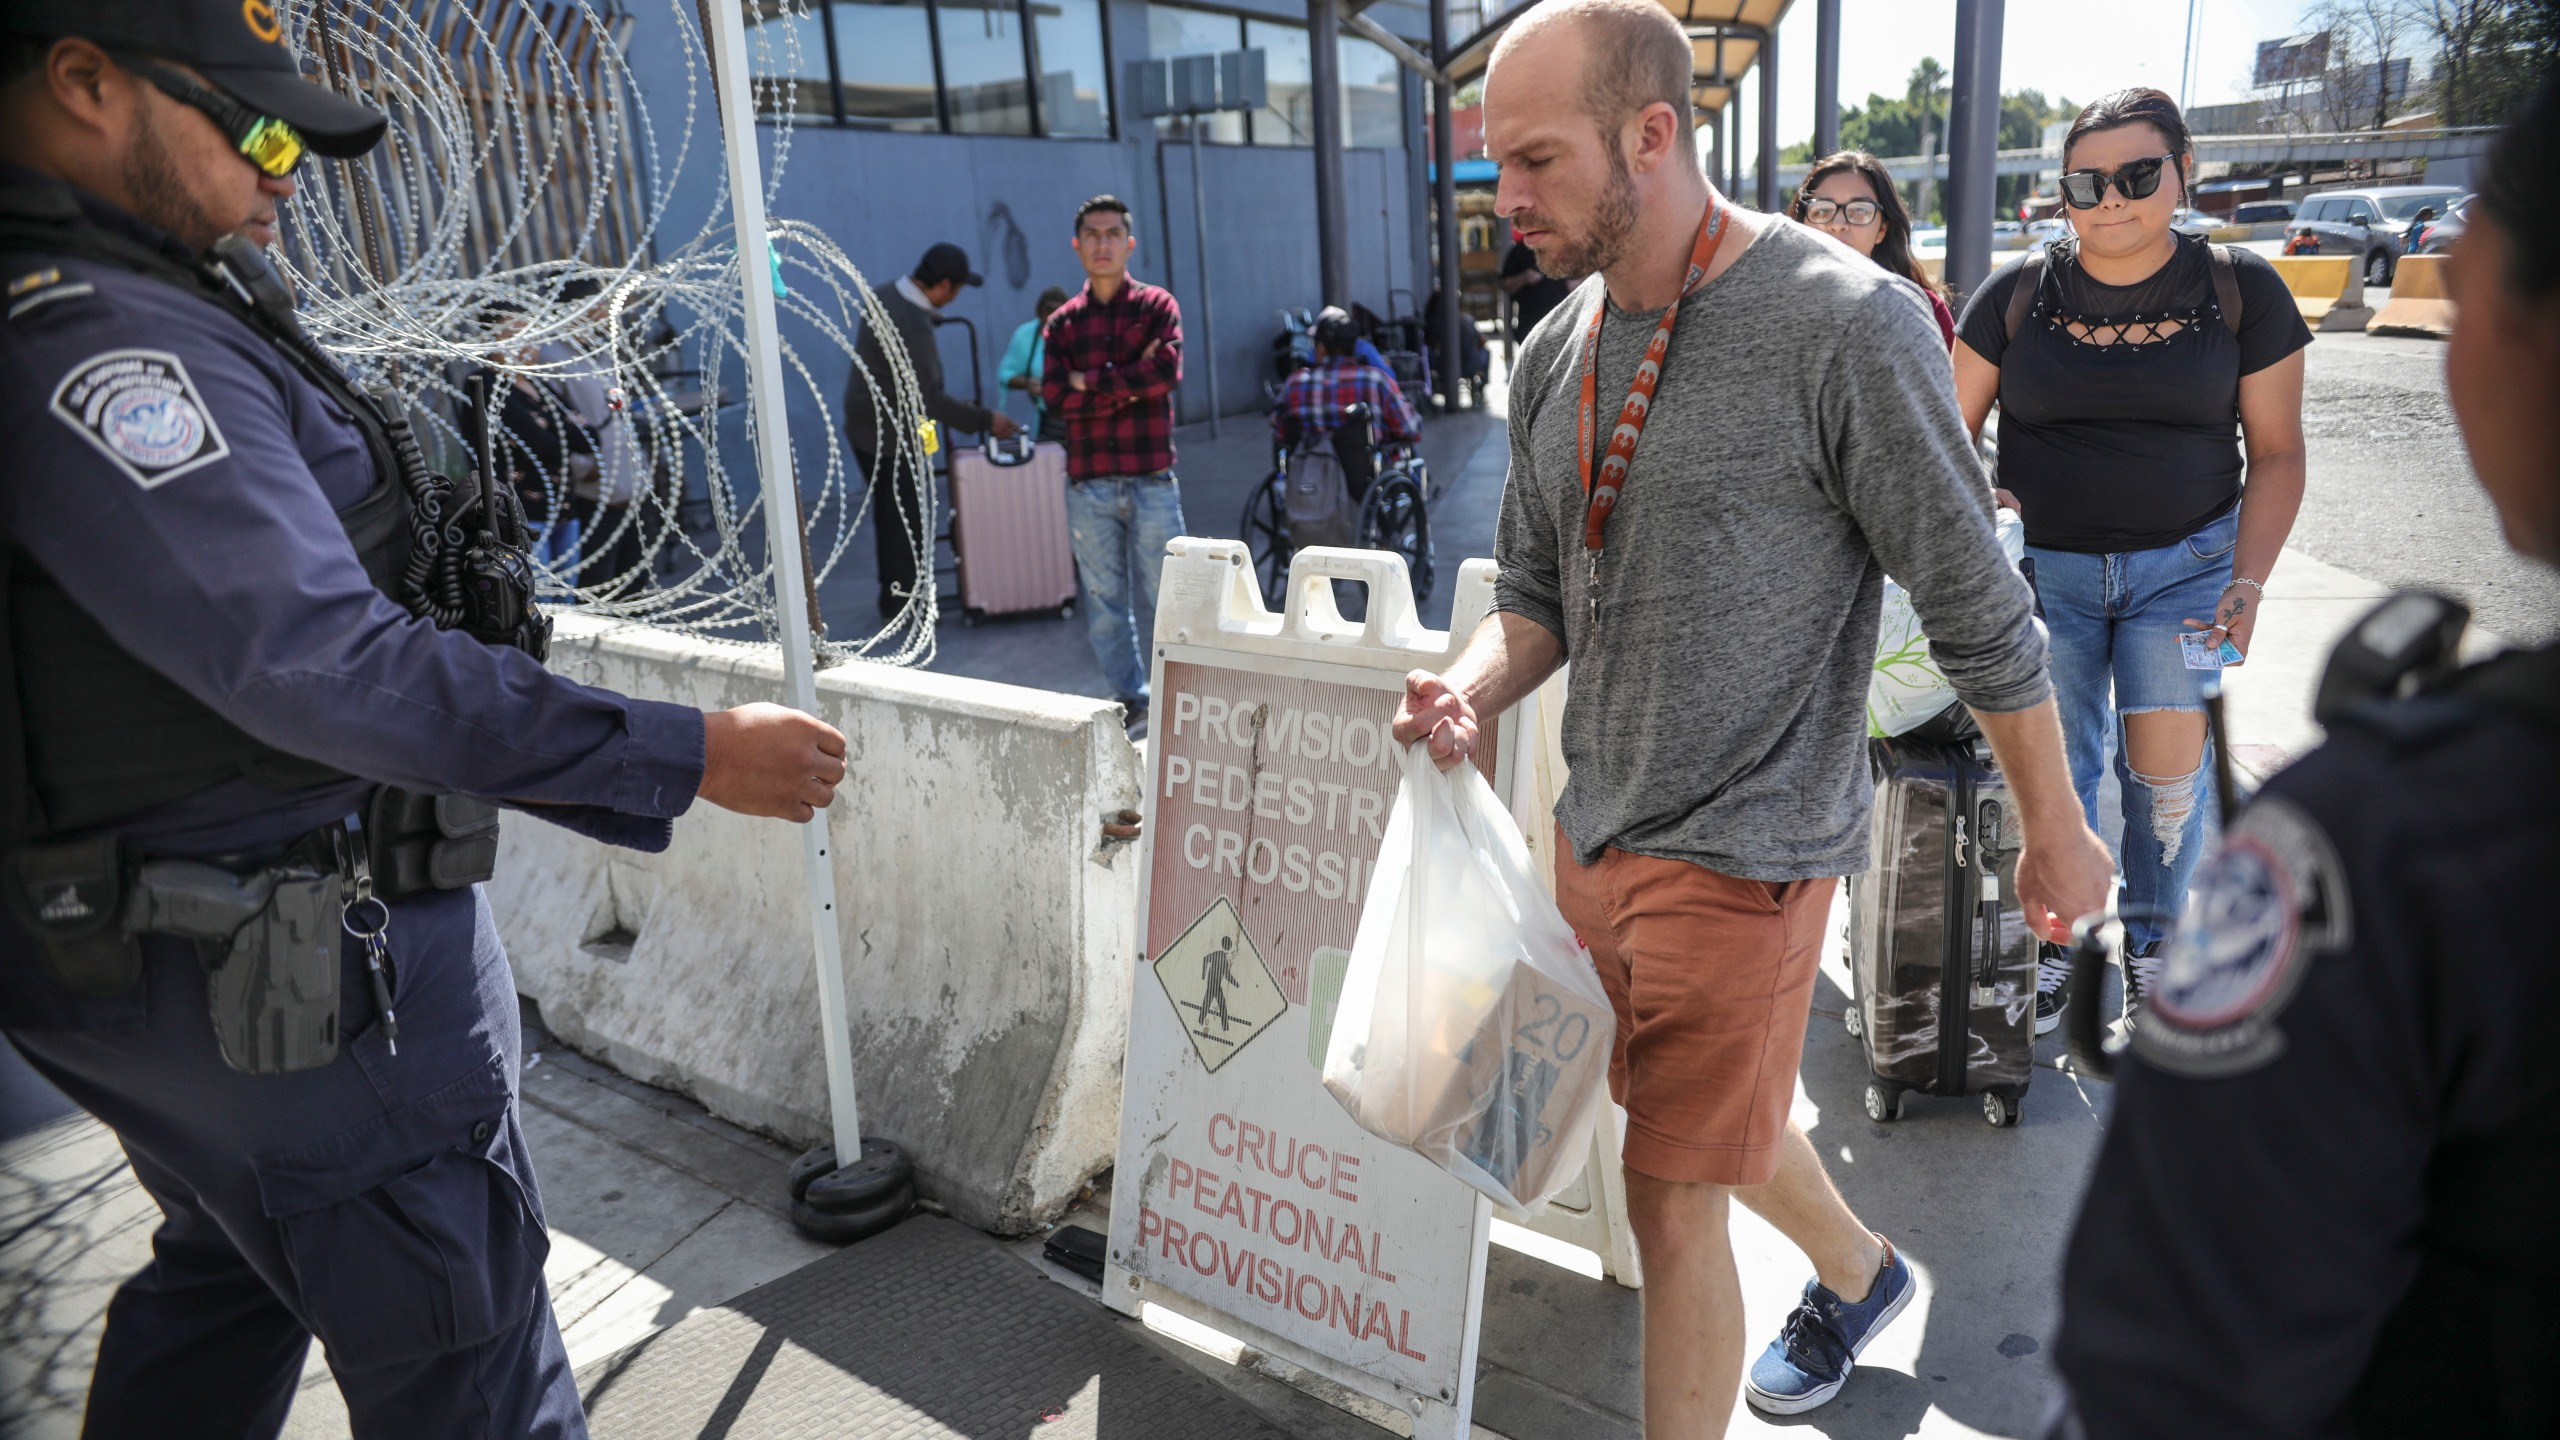 An Immigration and Customs Enforcement (ICE) agent check pedestrians' documentation at the San Ysidro Port of Entry on Oct. 2, 2019 in San Ysidro, California. (SANDY HUFFAKER/AFP via Getty Images)